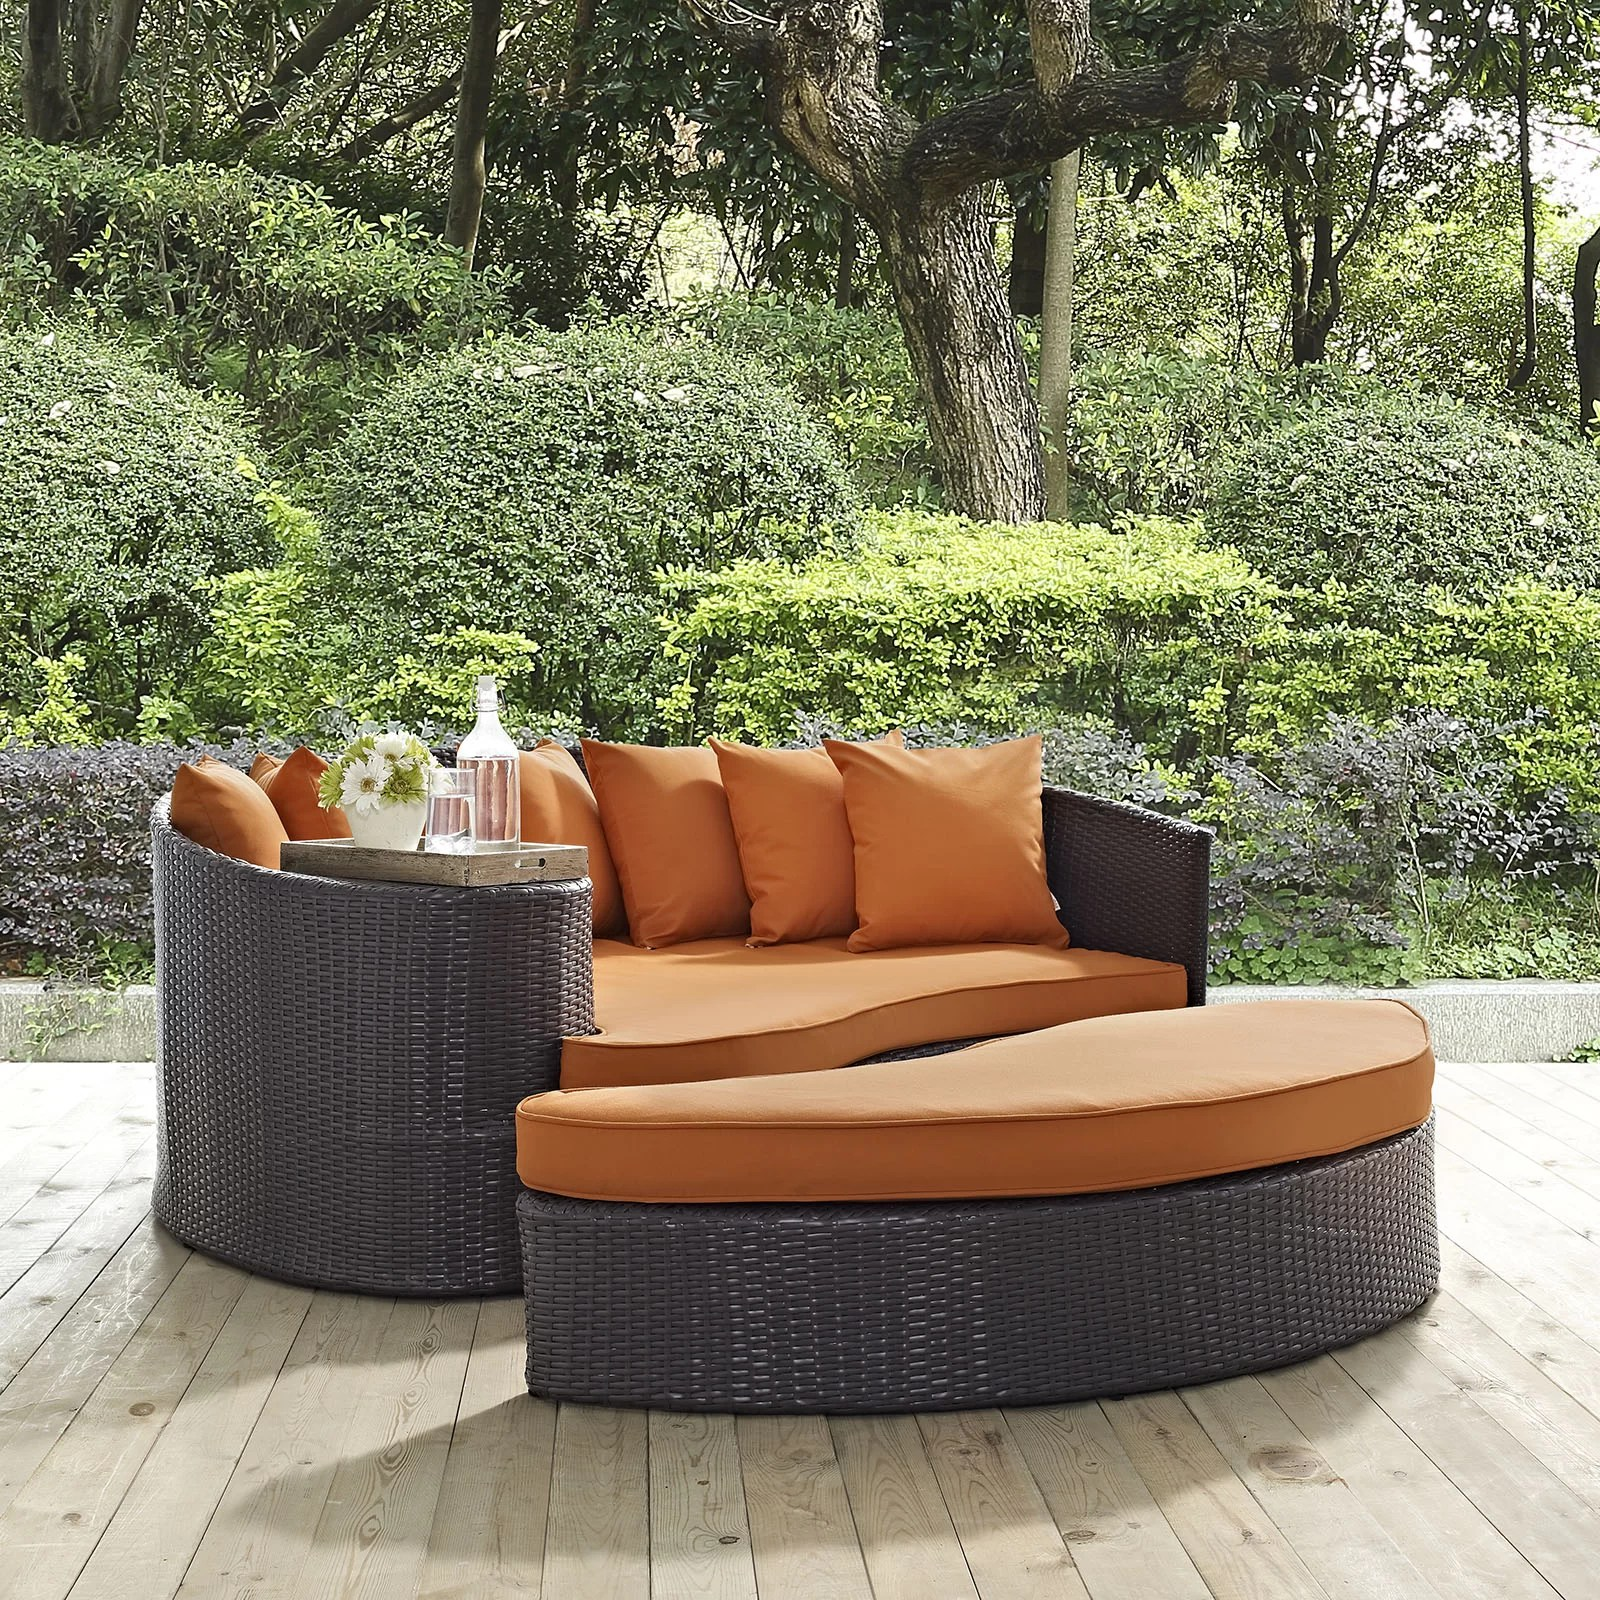 Modway Convene Outdoor Patio Daybed with Cushions  Wayfair